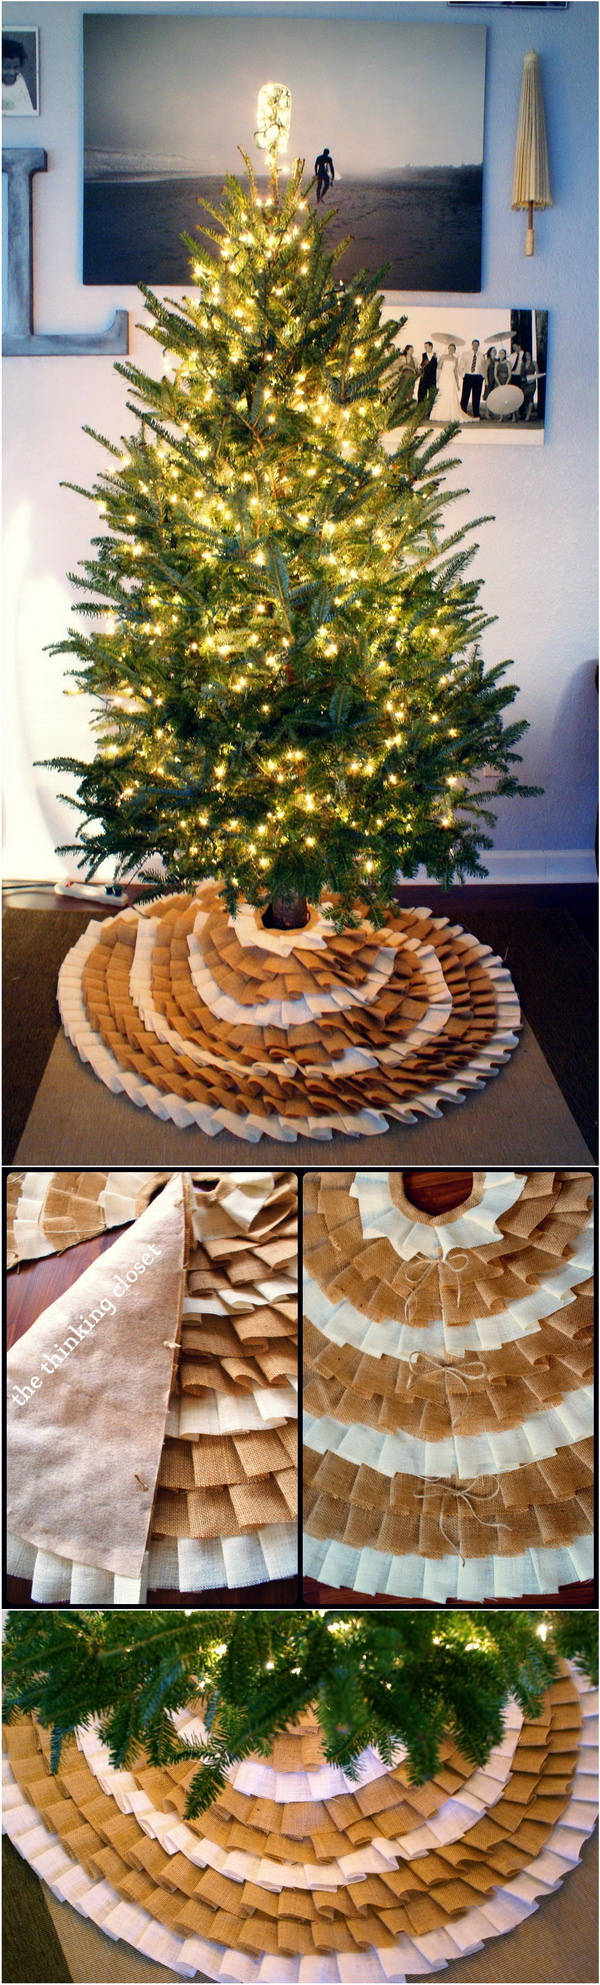 DIY No-Sew Ruffle Christmas Tree Skirt. This DIY burlap tree skirt is perfect for rustic Christmas decor! Learn how to make your own one with just a few supplies.